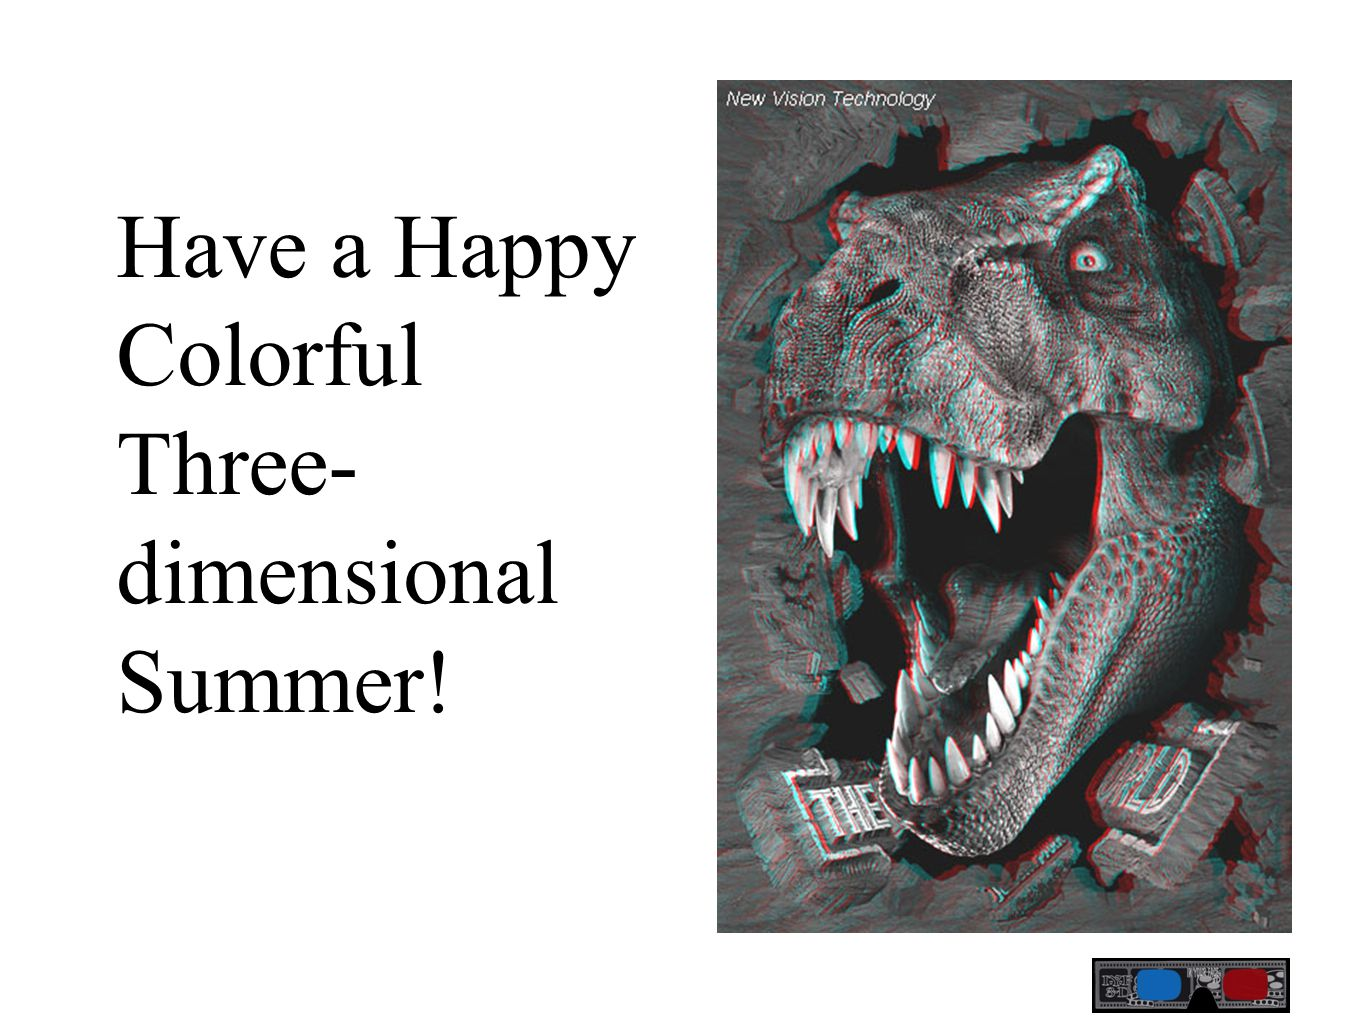 Have a Happy Colorful Three- dimensional Summer!